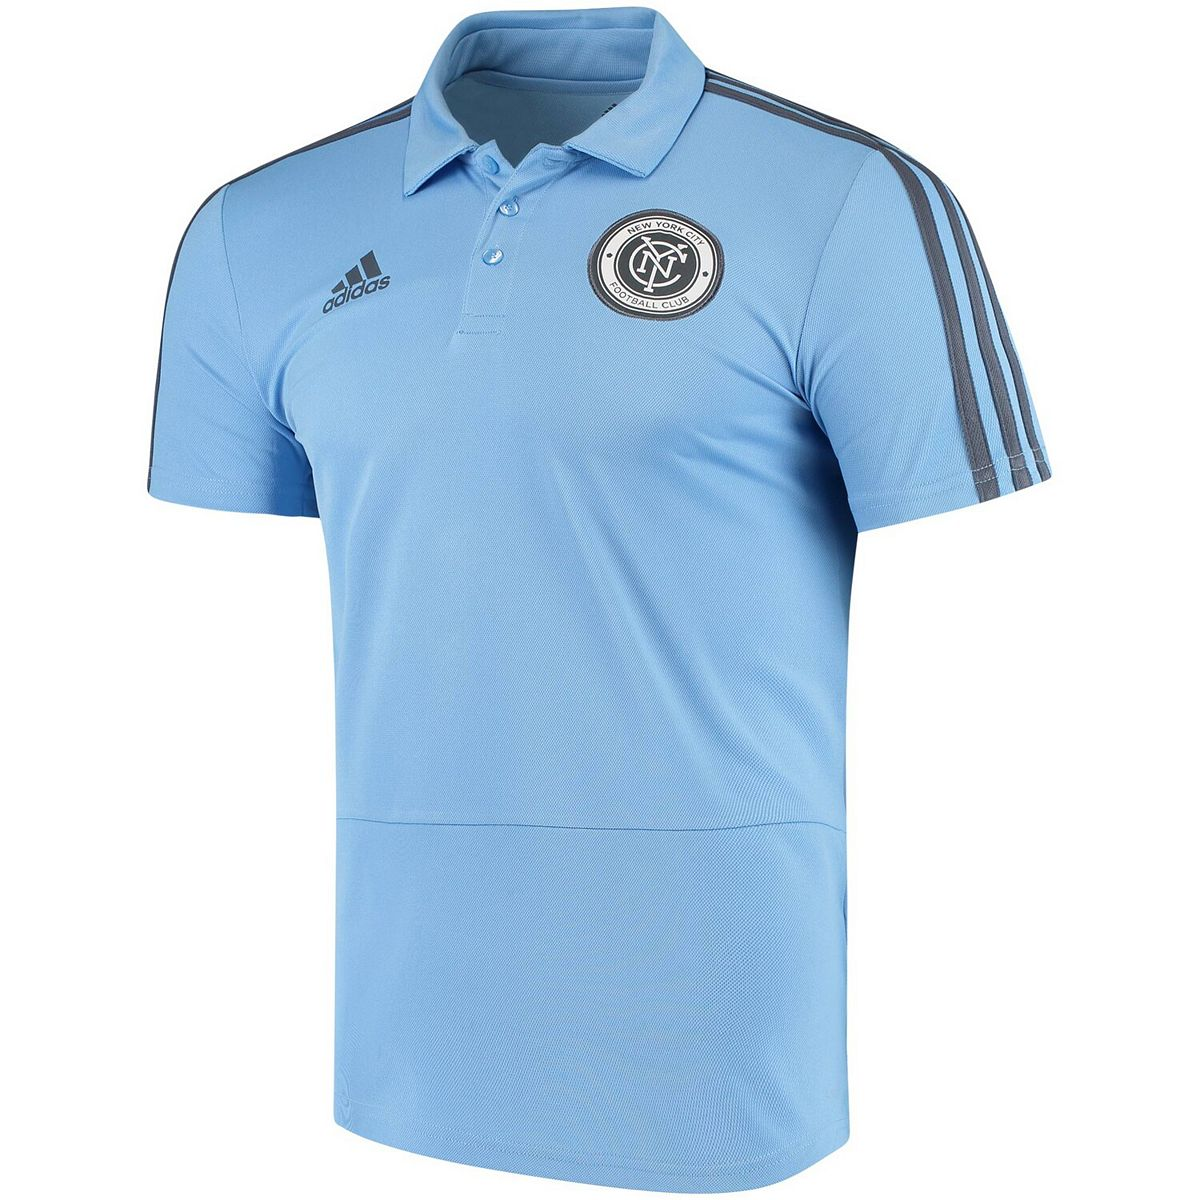 Men's adidas Navy New York City FC 2018 Coaches climalite Polo Zry8y